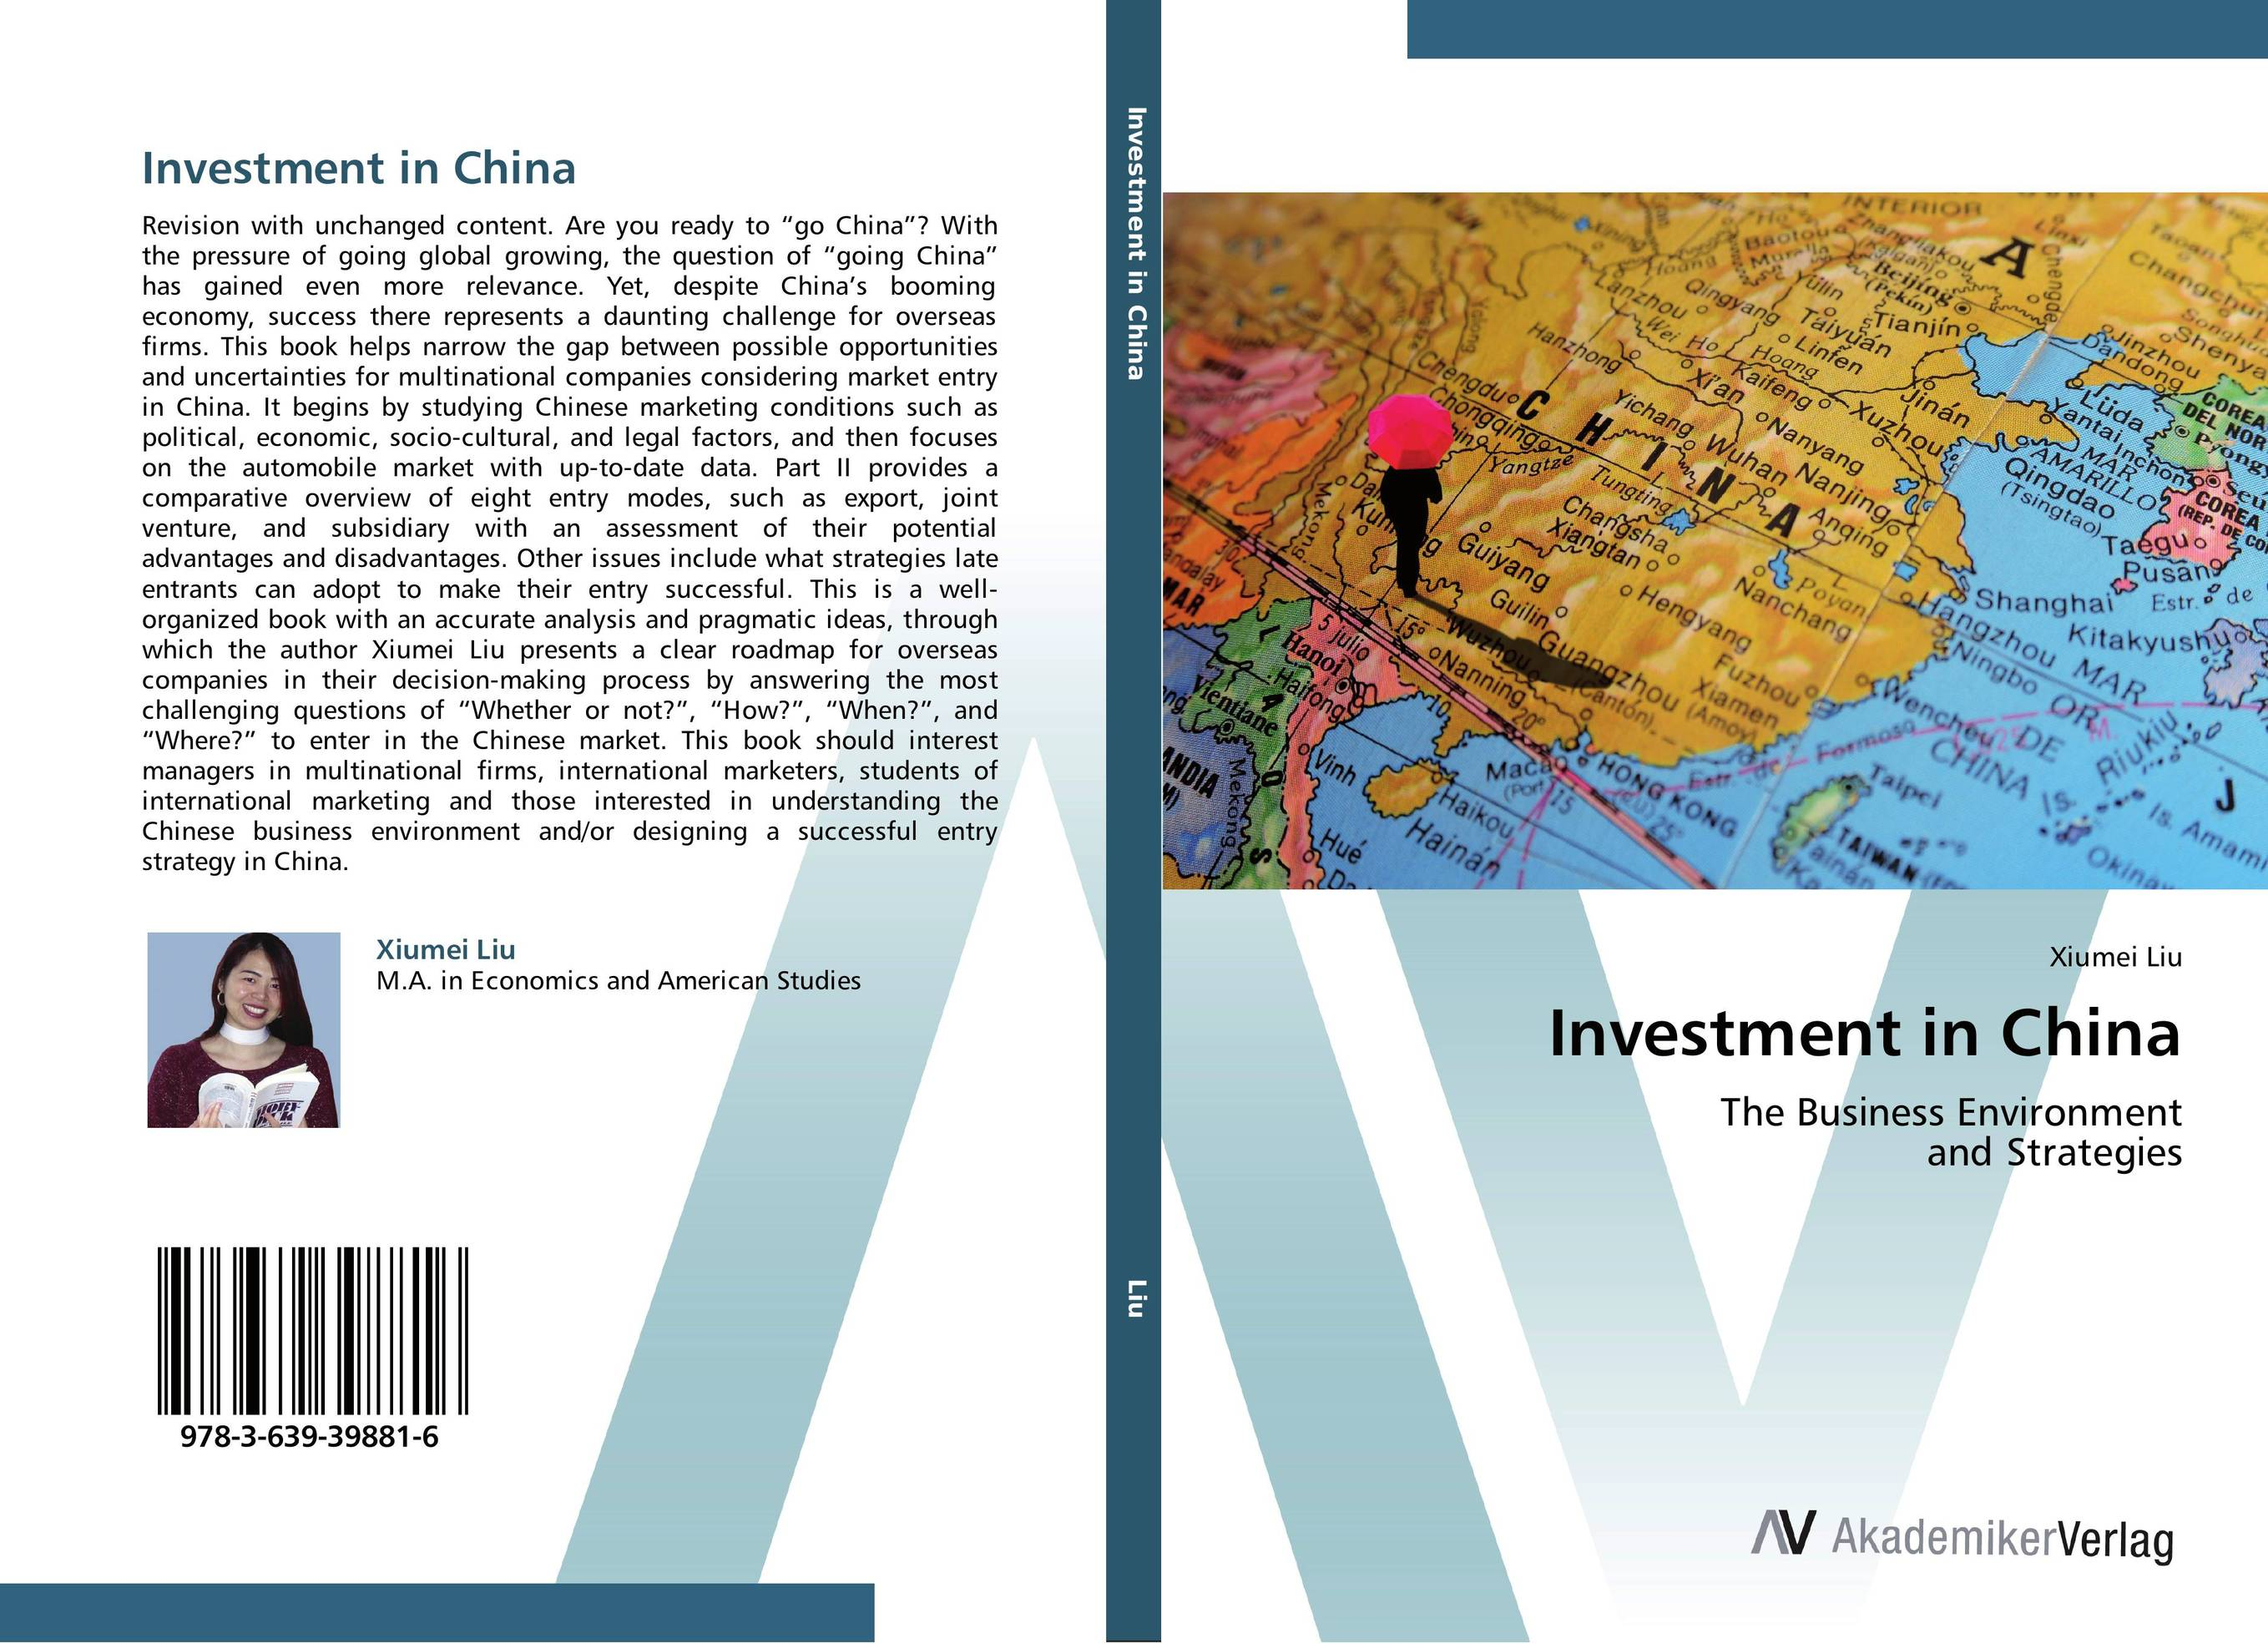 Investment in China aswath damodaran investment philosophies successful strategies and the investors who made them work